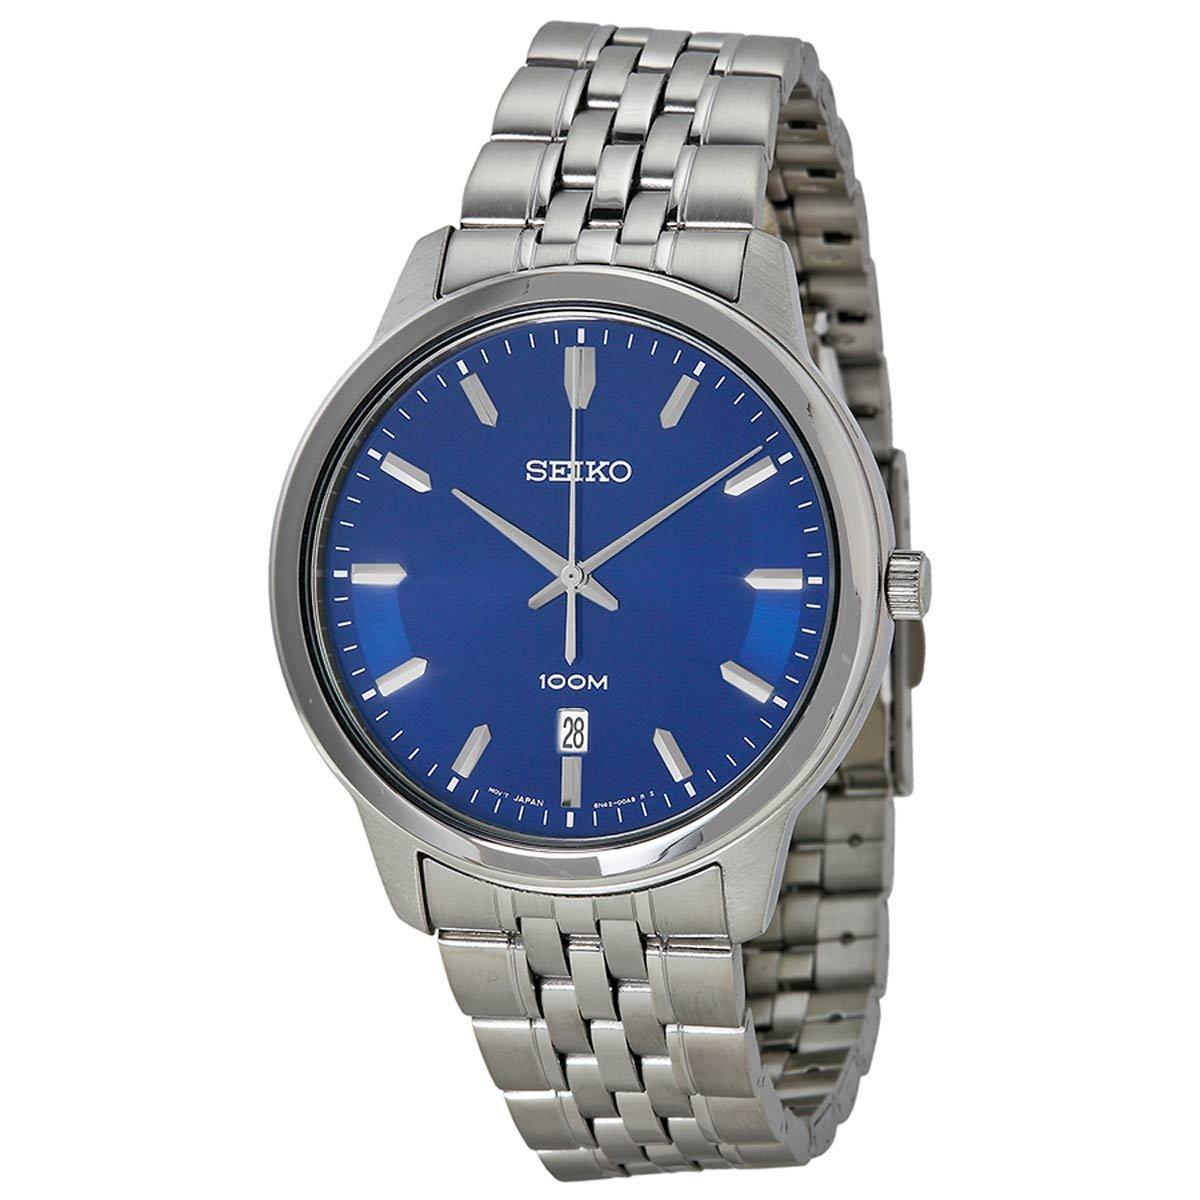 47ae21824 Seiko Neo Classic SUR029 P1 Blue Dial Stainless Steel Men's Analog Quartz  Watch: Amazon.com.au: Fashion